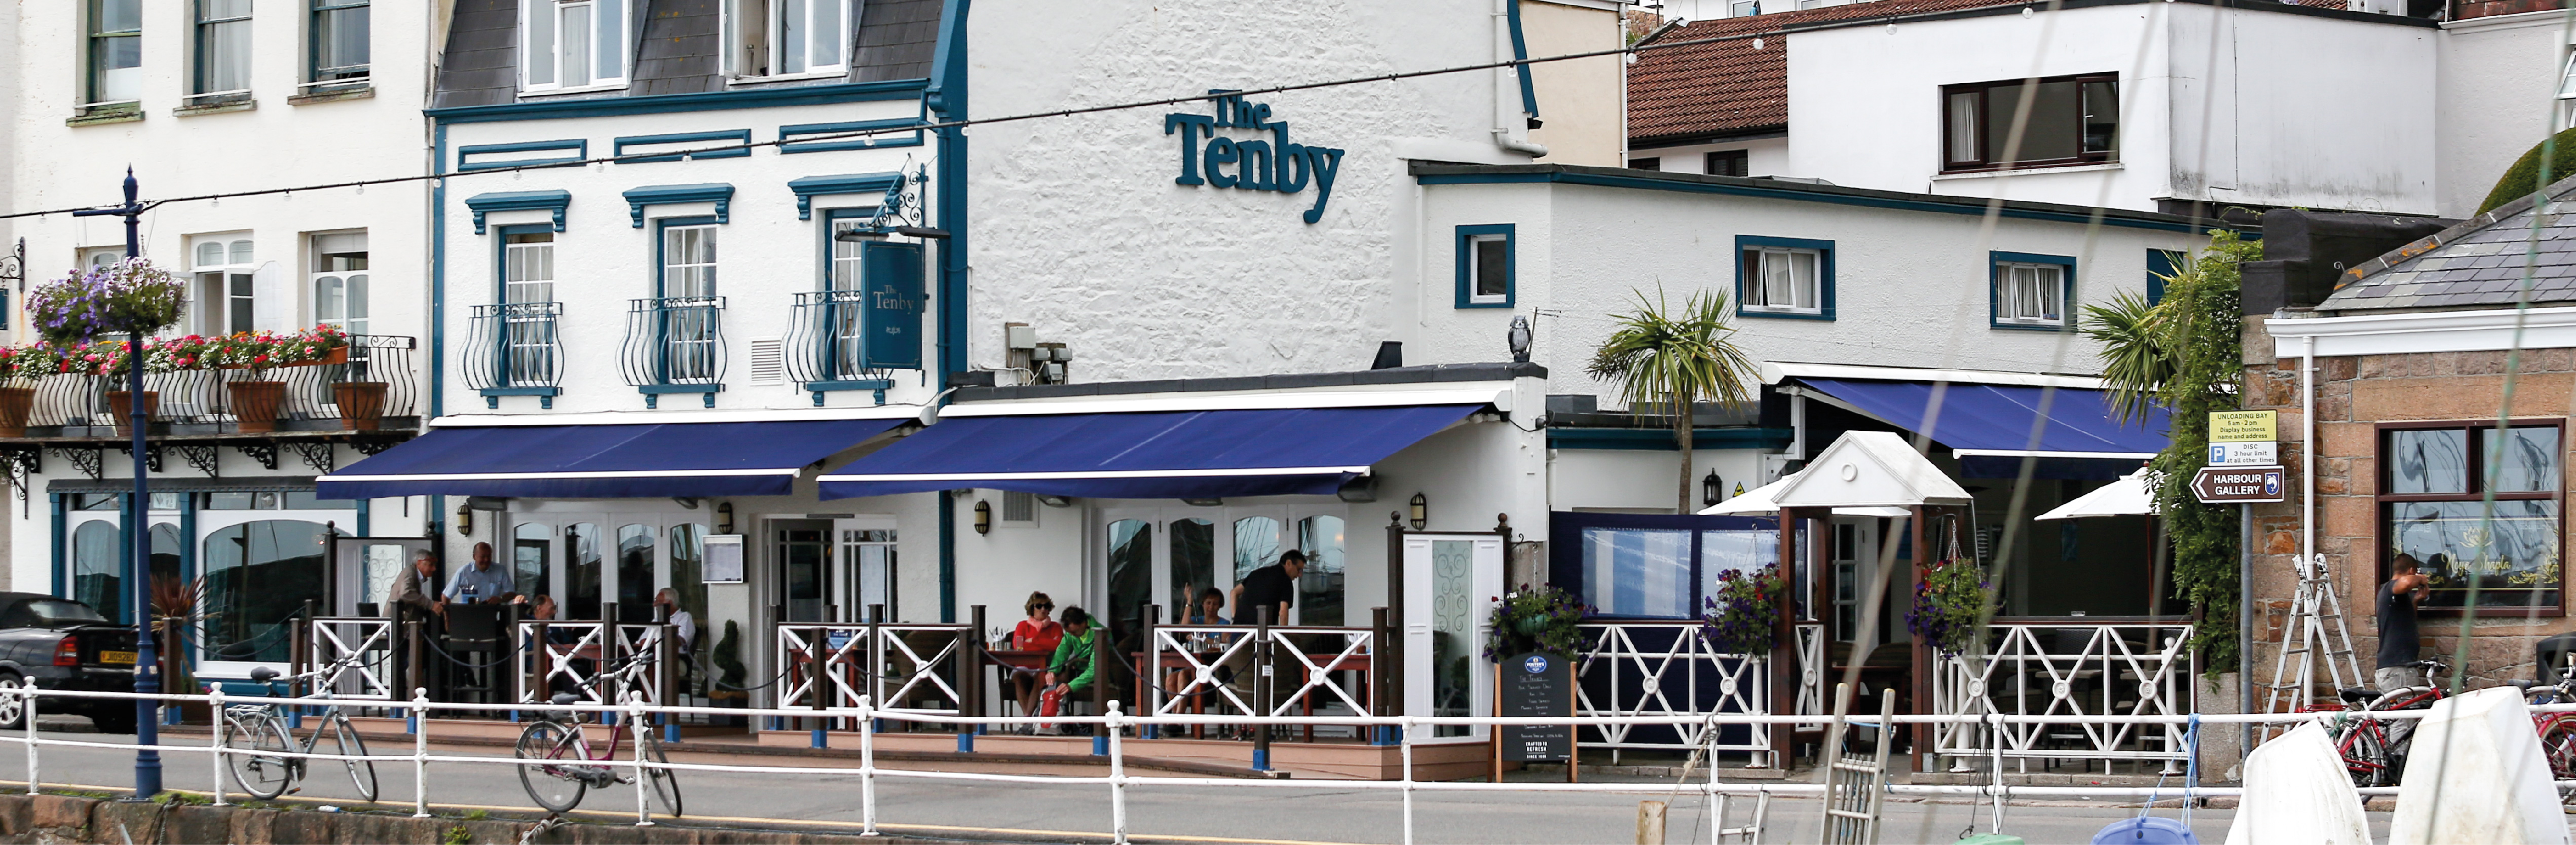 The Tenby Outside